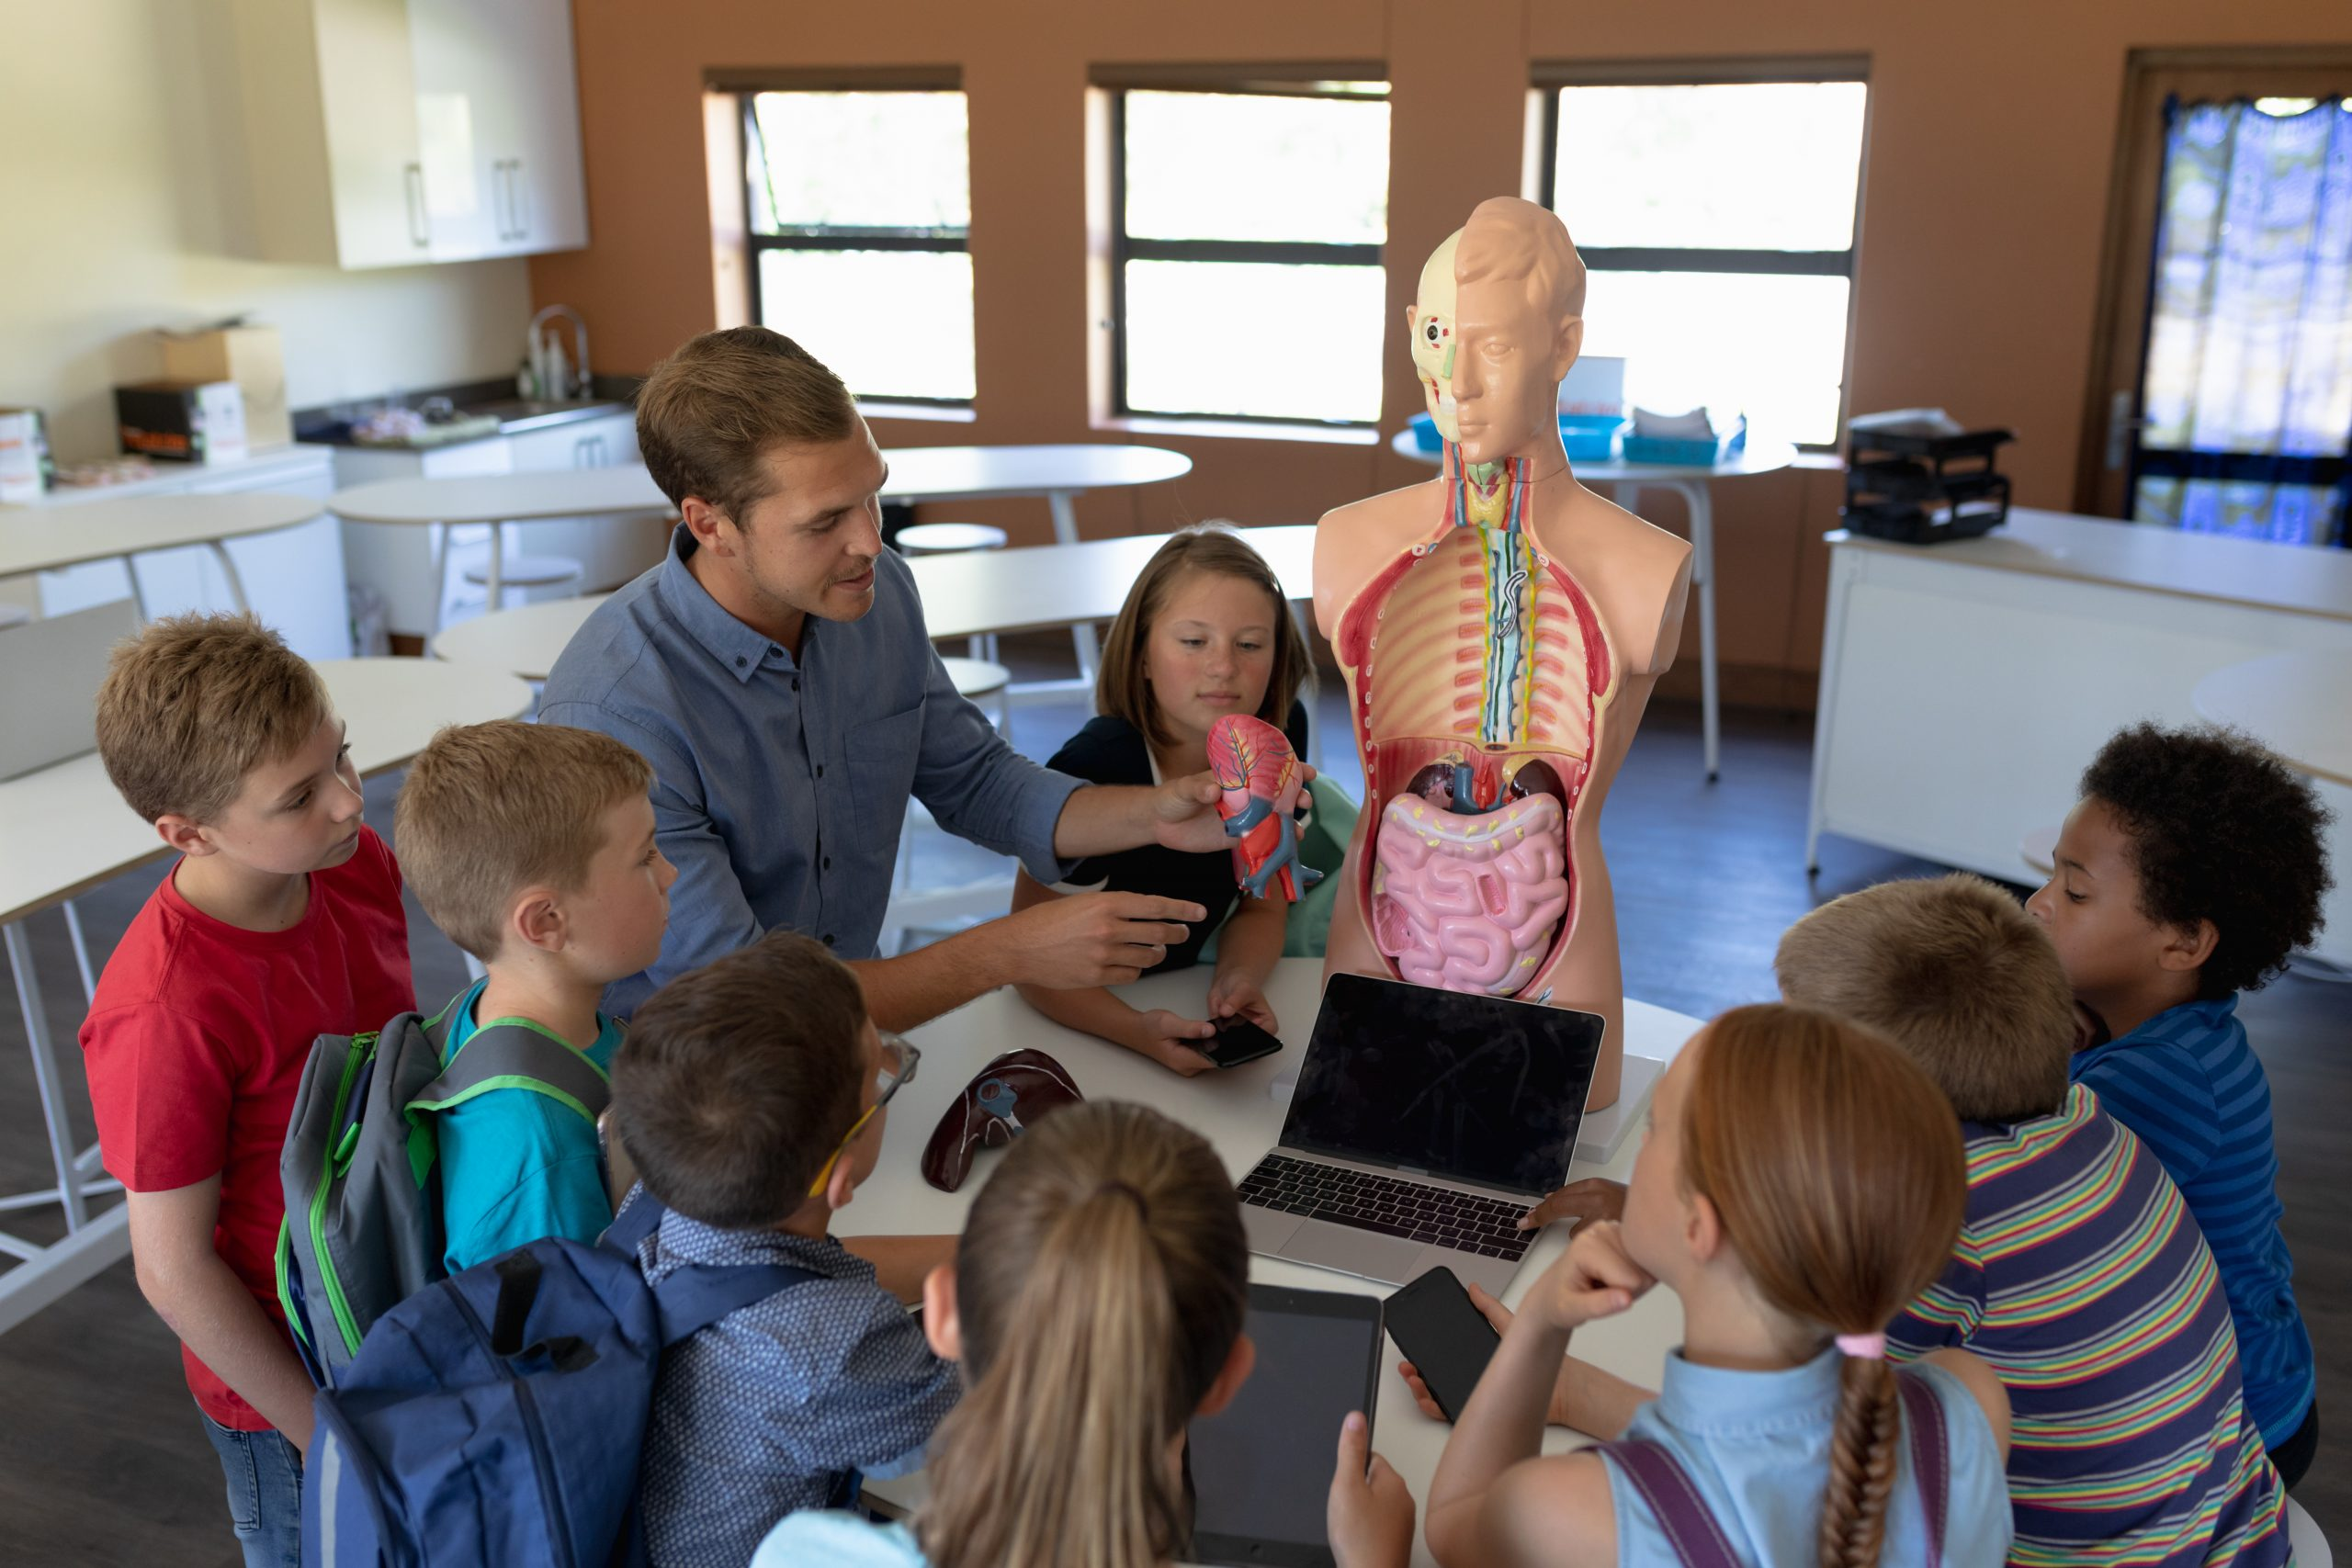 High angle view of a Caucasian male teacher using a human anatomy model to teach a diverse group of elementary school children about human organs during a biology lesson, the children sitting in a circle and listening while he talks, holding a model of a human organ